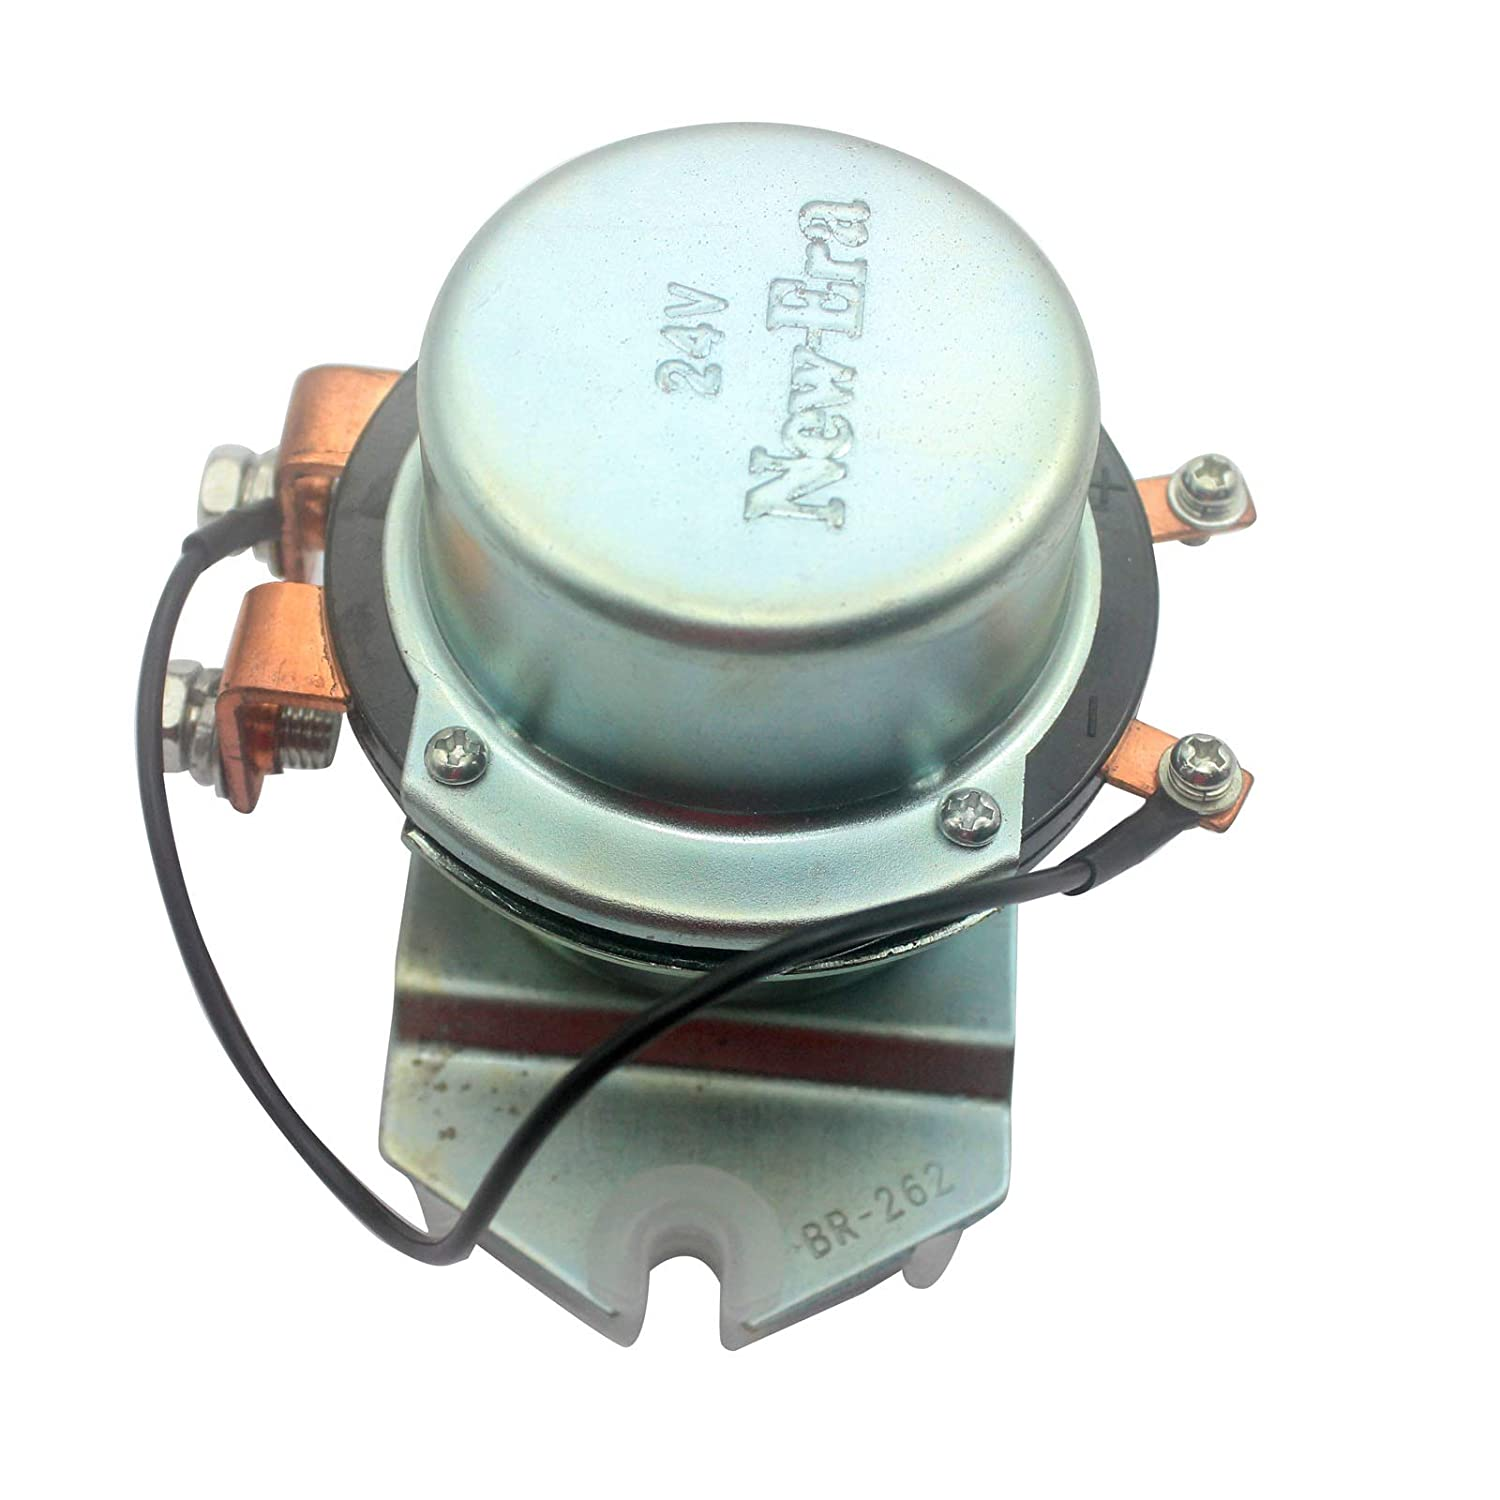 4255762 Relay BR-262 08088-30000 SINOCMP 24V Electrode Relay with Plastic Spacers for Komatsu Hitachi Kobelco for John Deere 800C Excavator Parts 3 Month Waranty